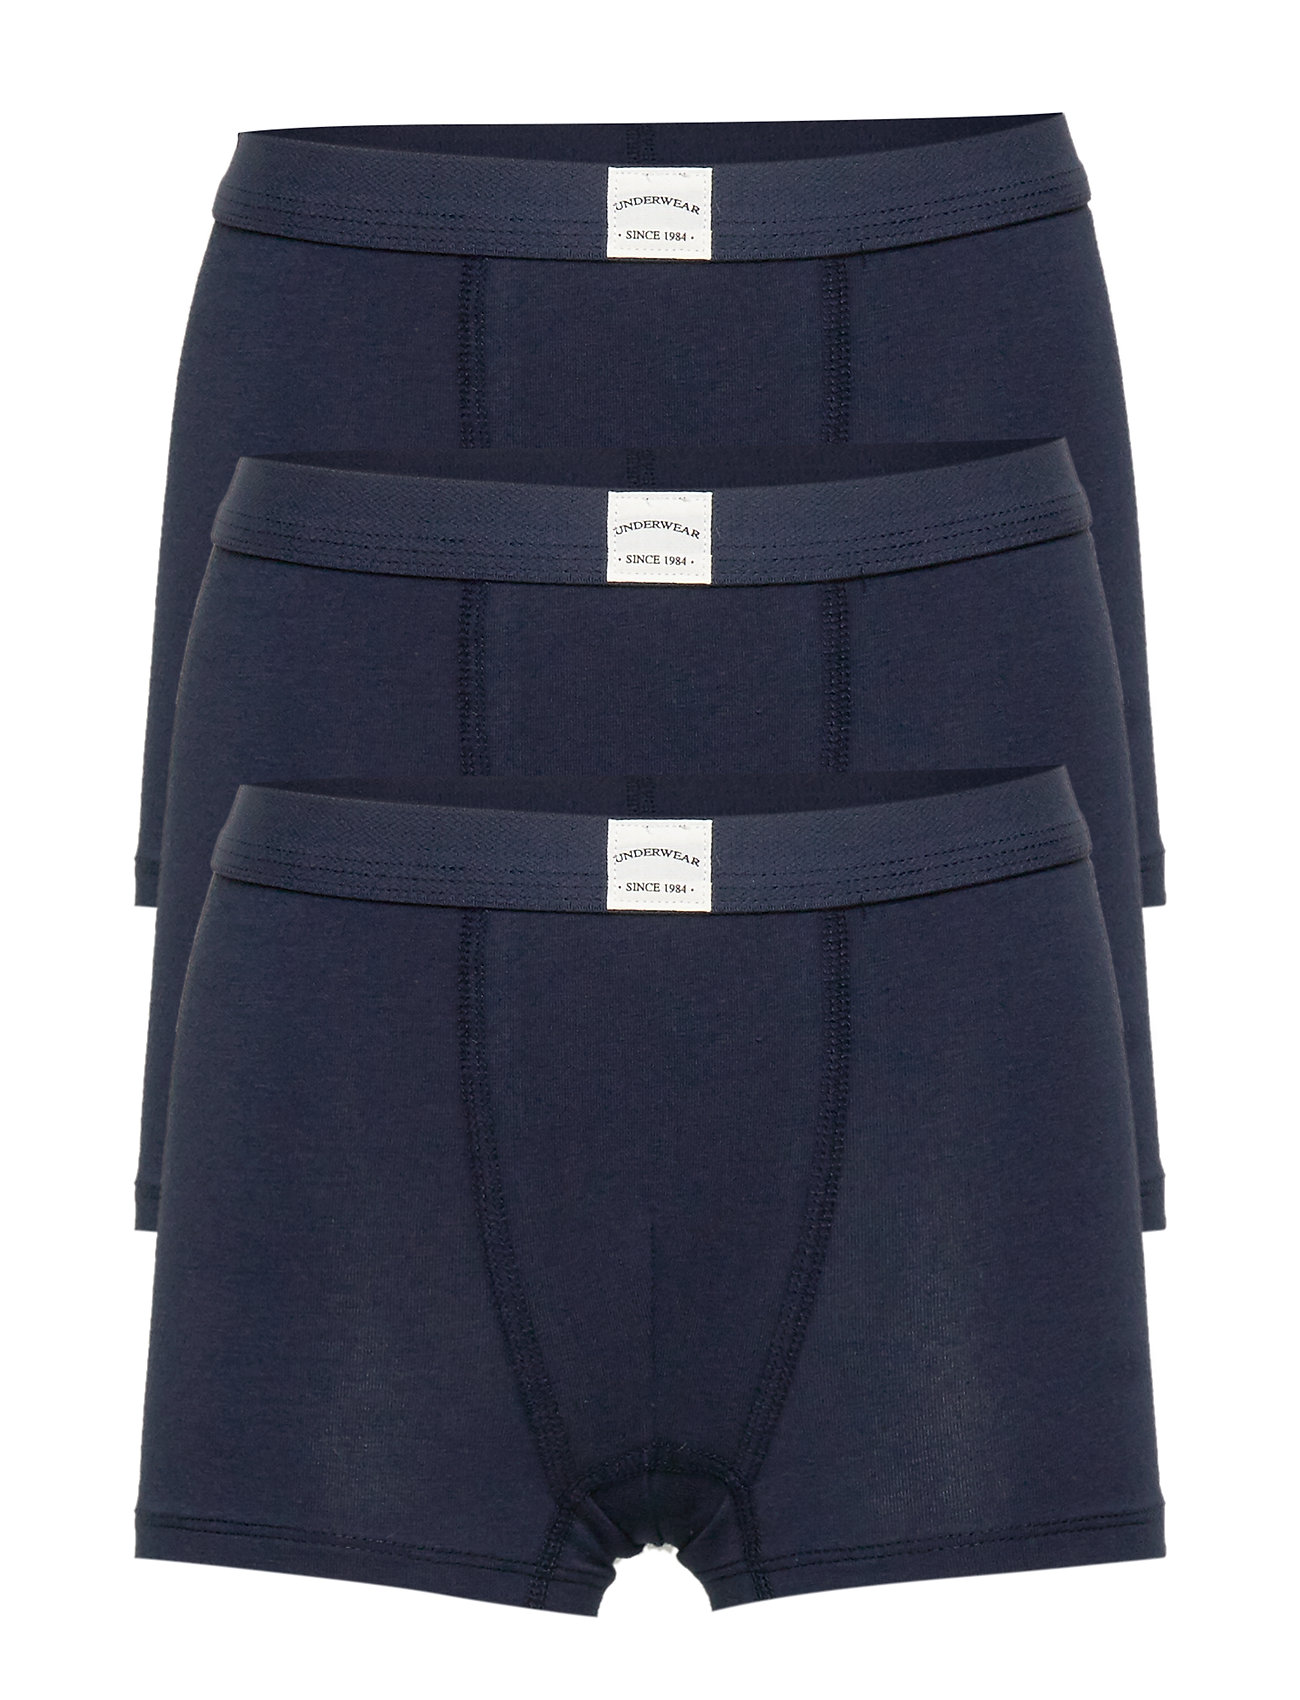 Mango Kids Plain cotton boxer shorts - NAVY